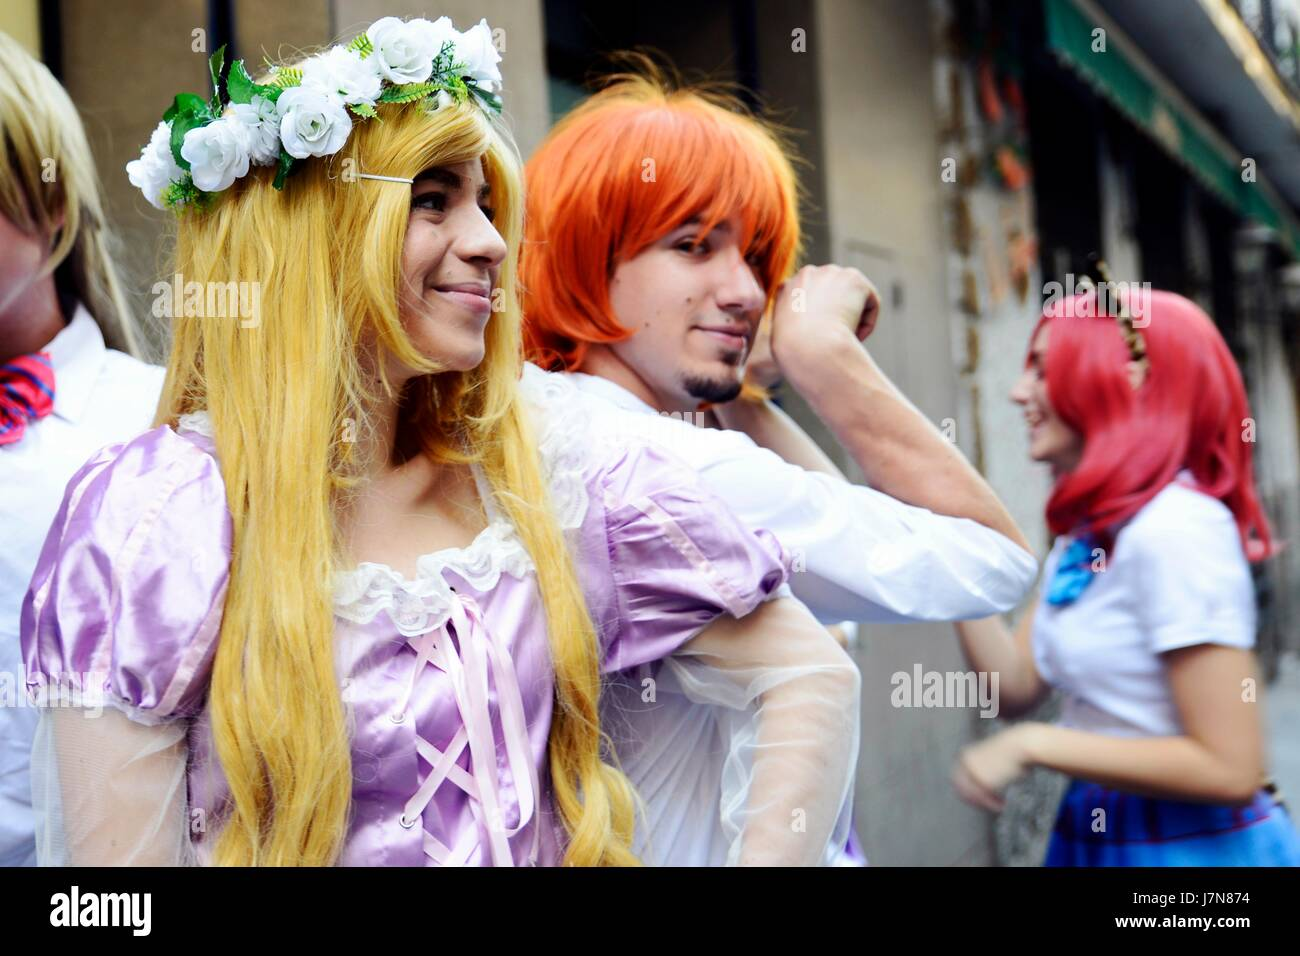 Madrid, Spain. 25th May 2017. Cosplayers wear costumes and fashion accessories to represent a character. May 25 - Stock Image